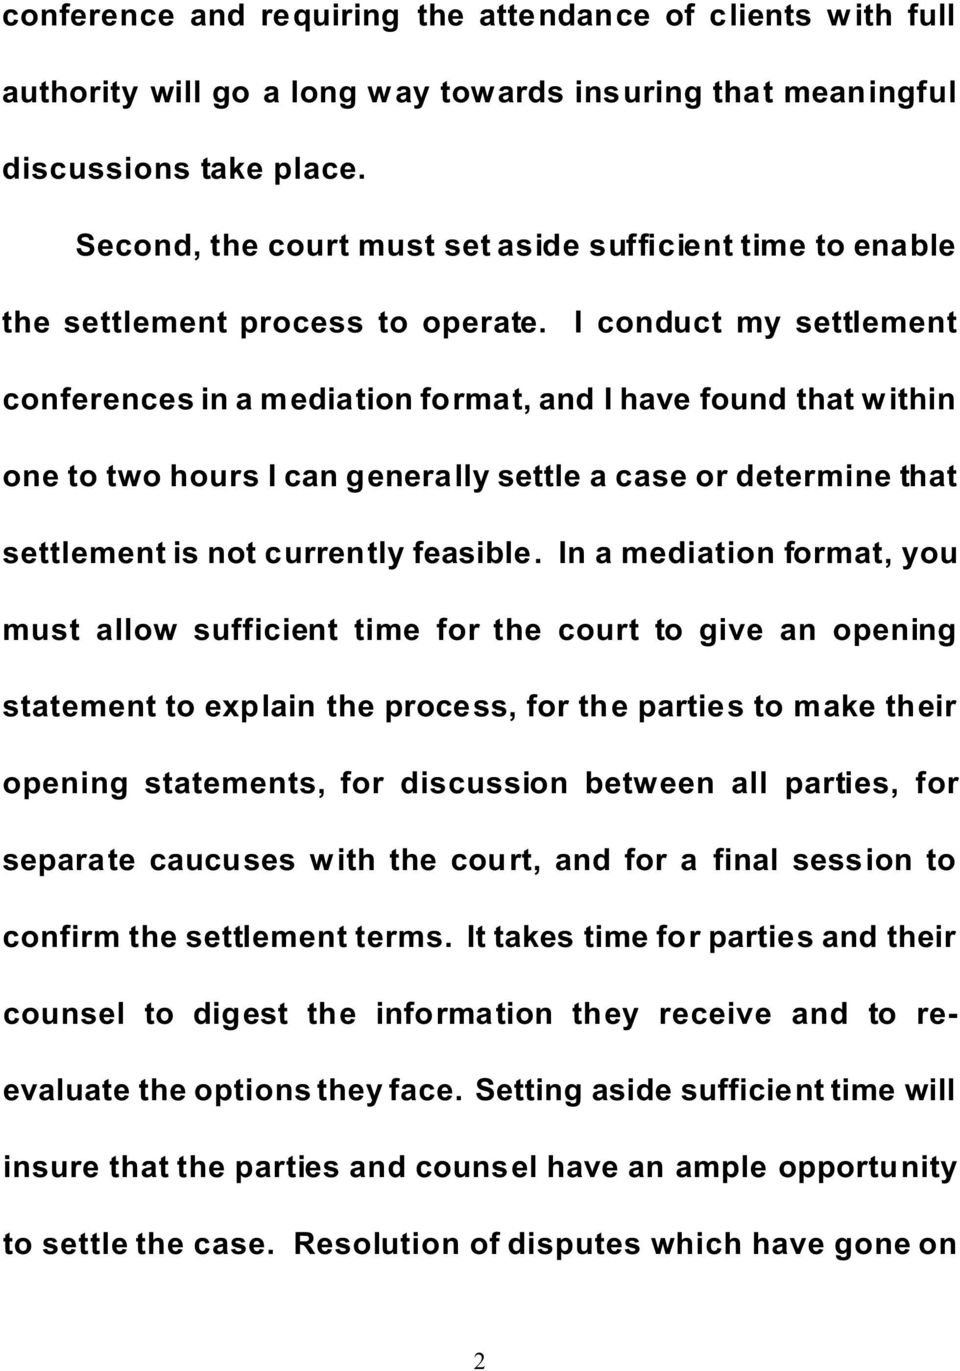 I conduct my settlement conferences in a mediation format, and I have found that within one to two hours I can generally settle a case or determine that settlement is not currently feasible.